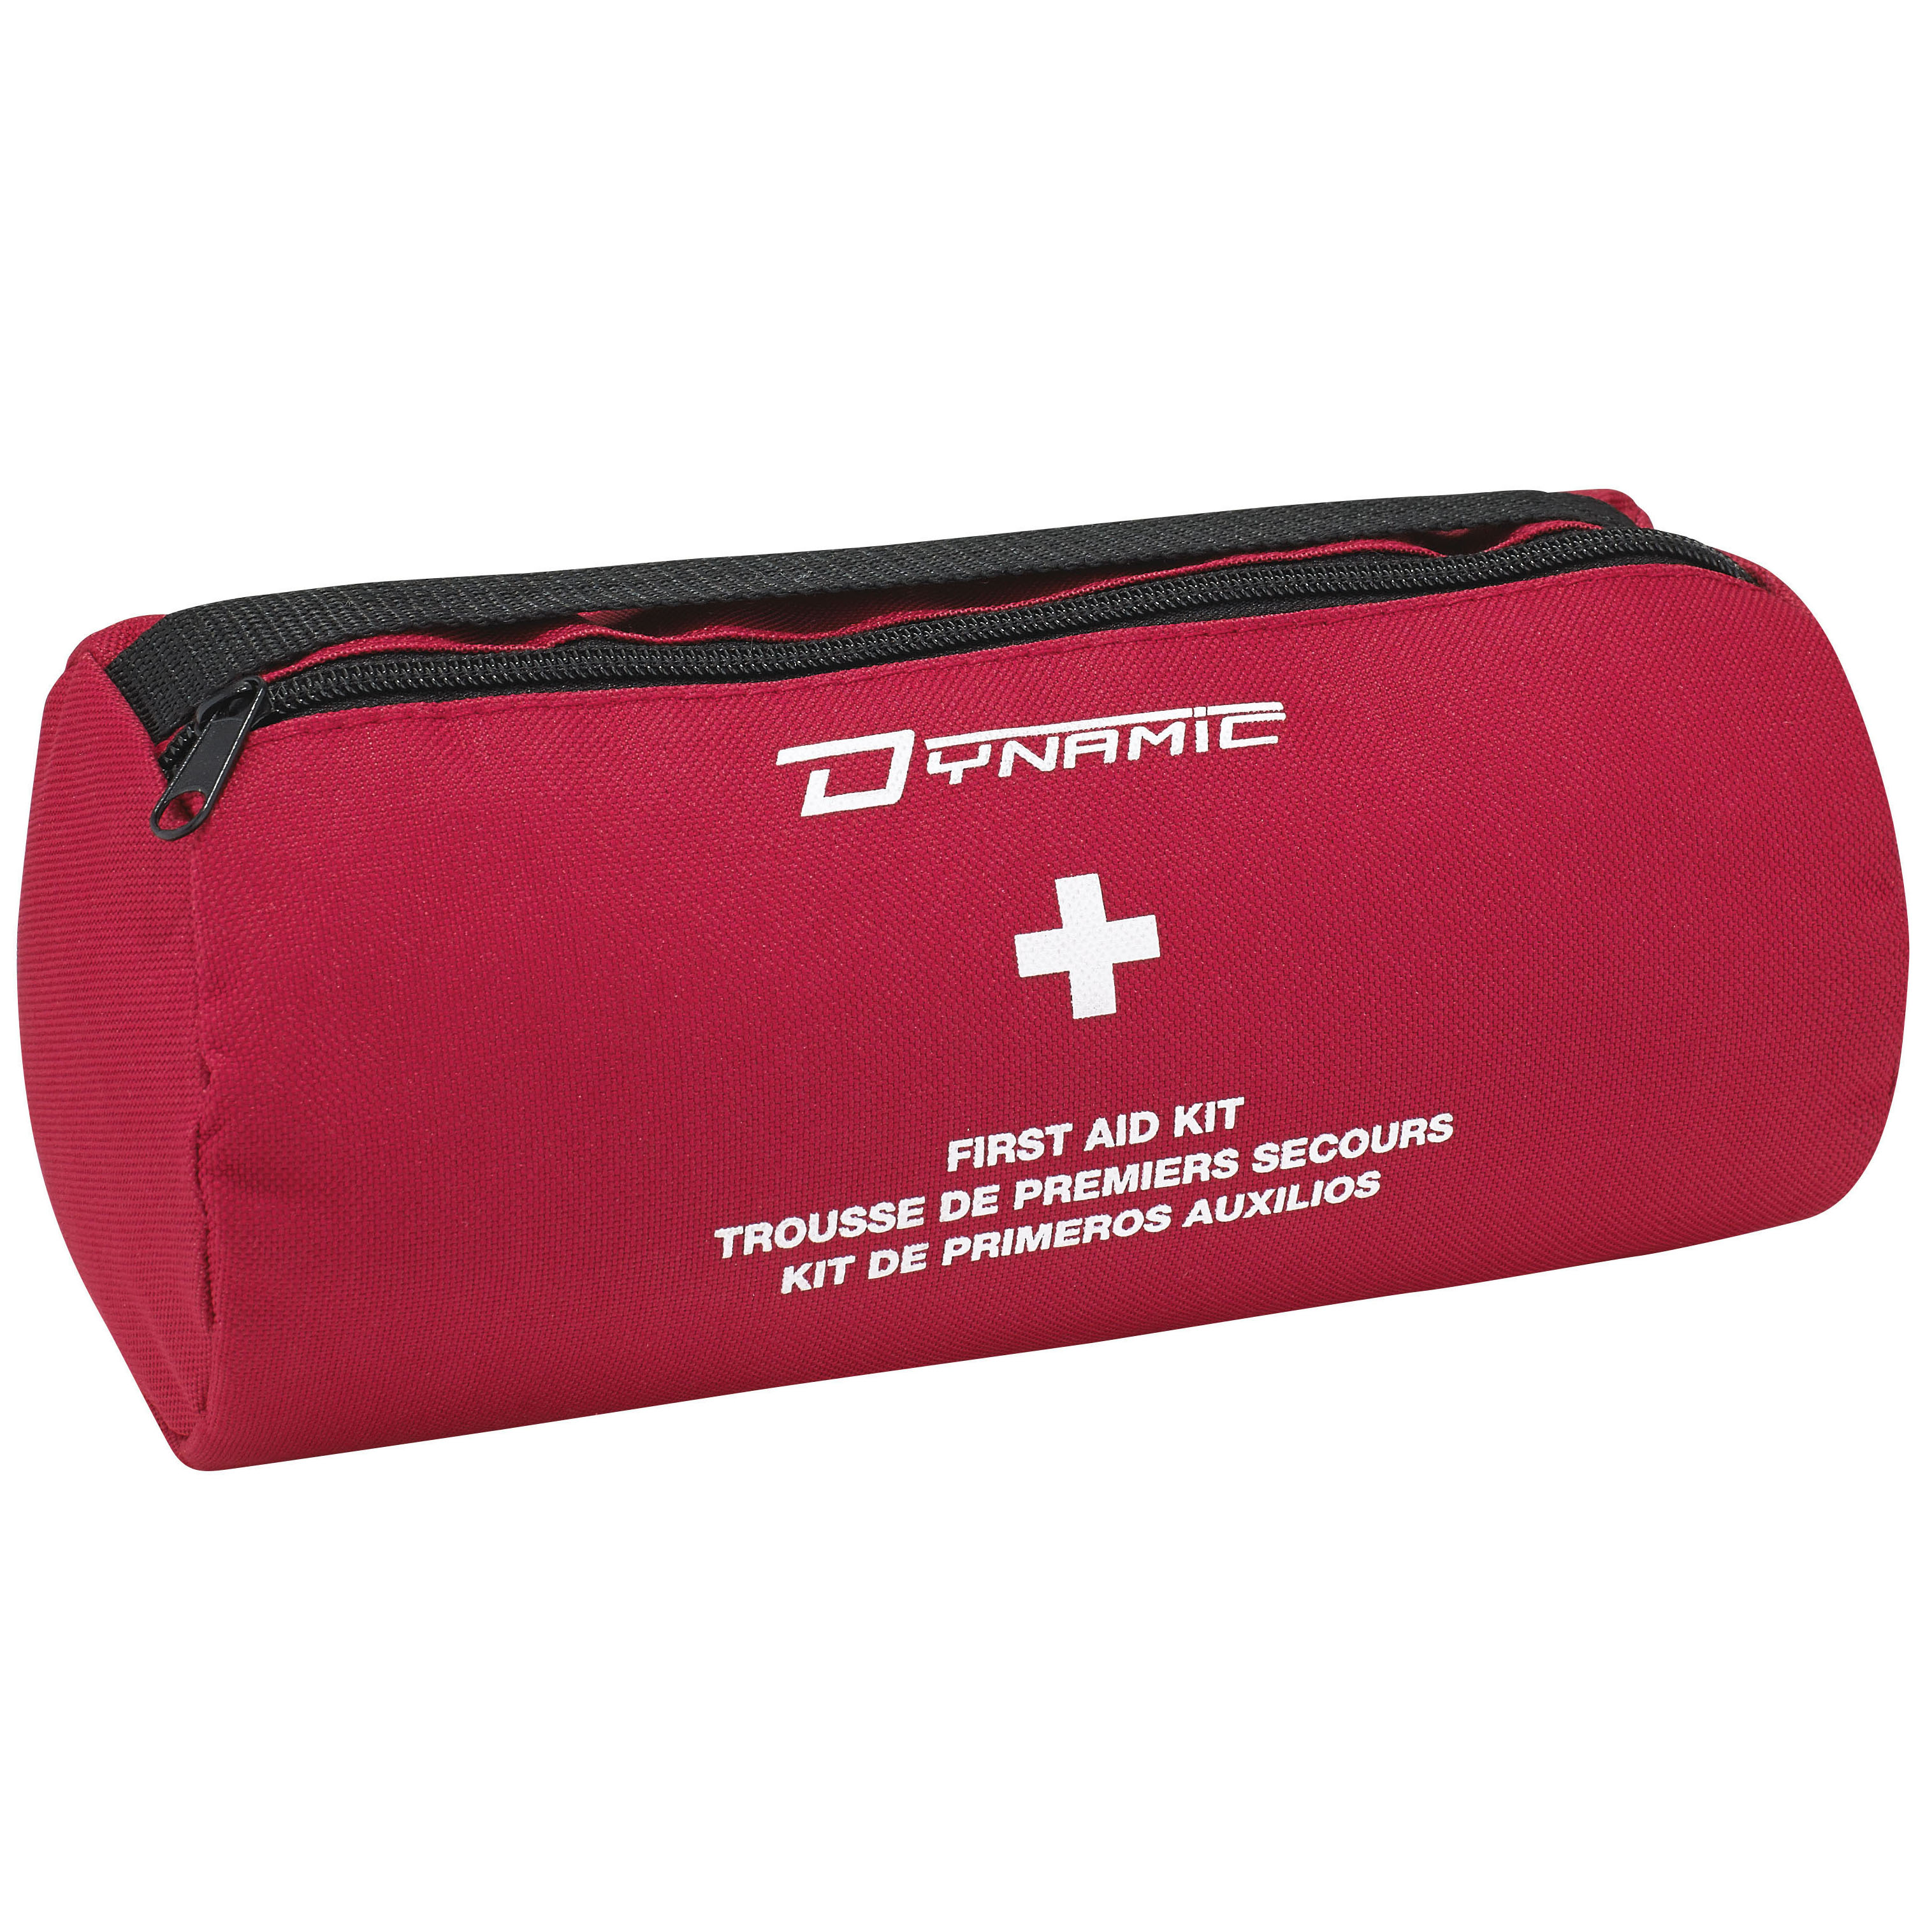 CSA standard First aid kit Type 2 Small in nylon bag